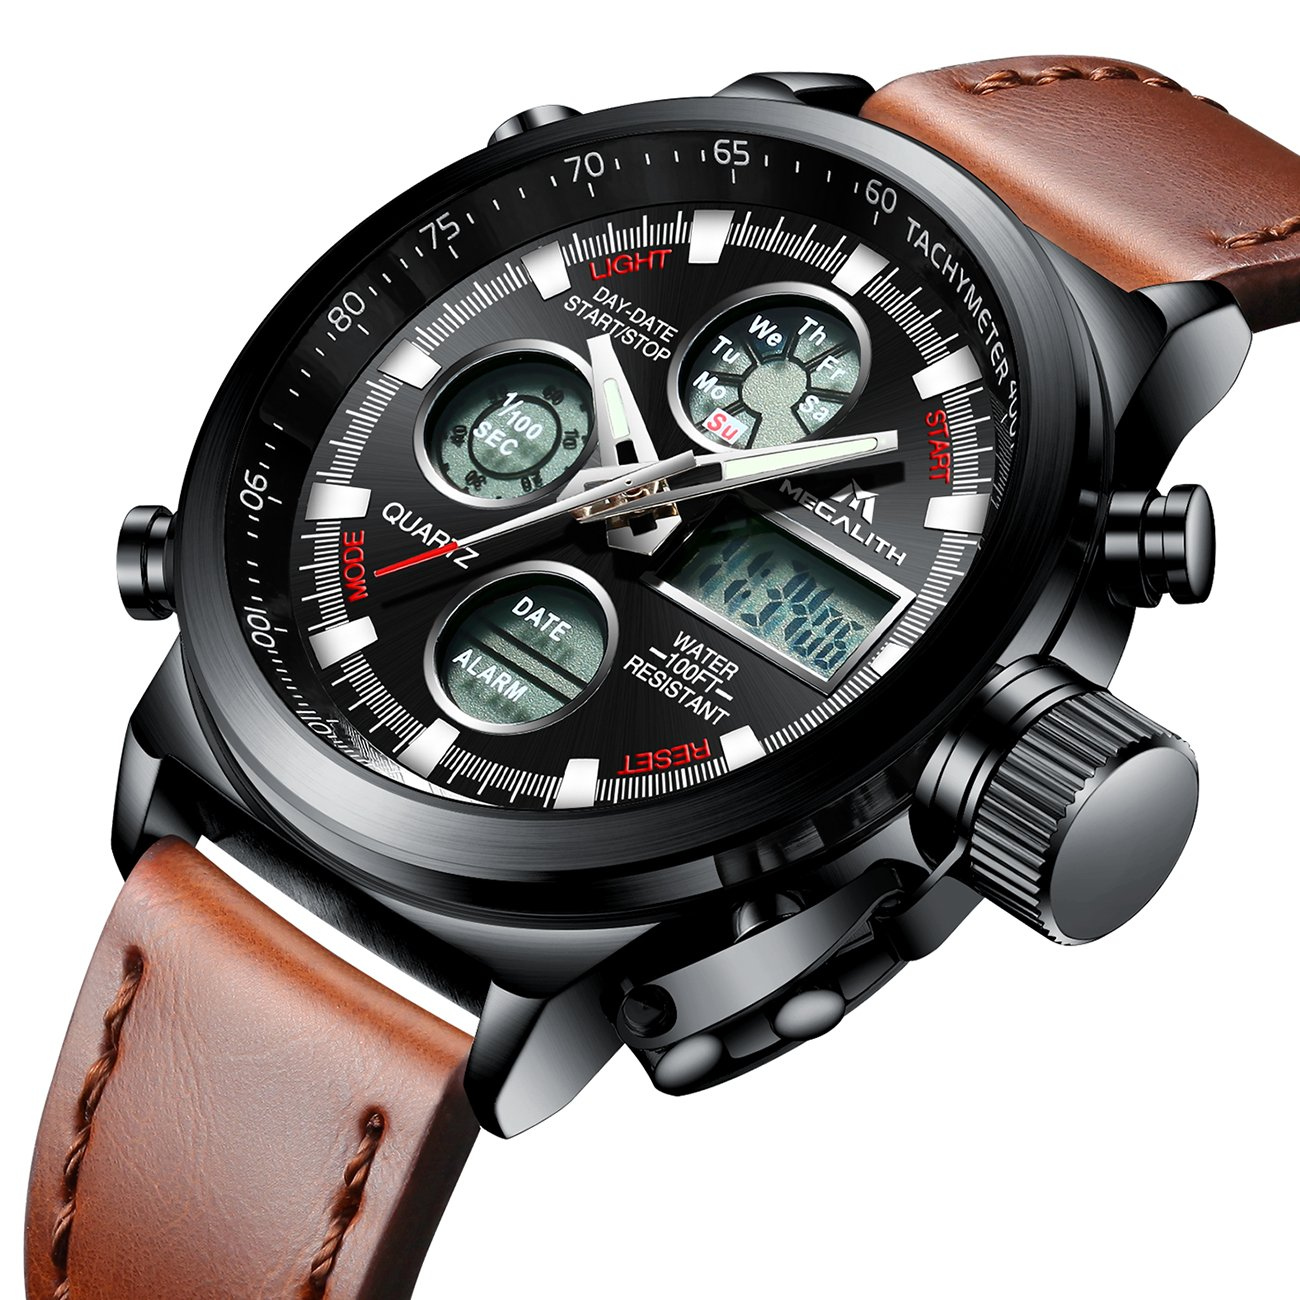 of sports luxury launched watches best in buying guide the